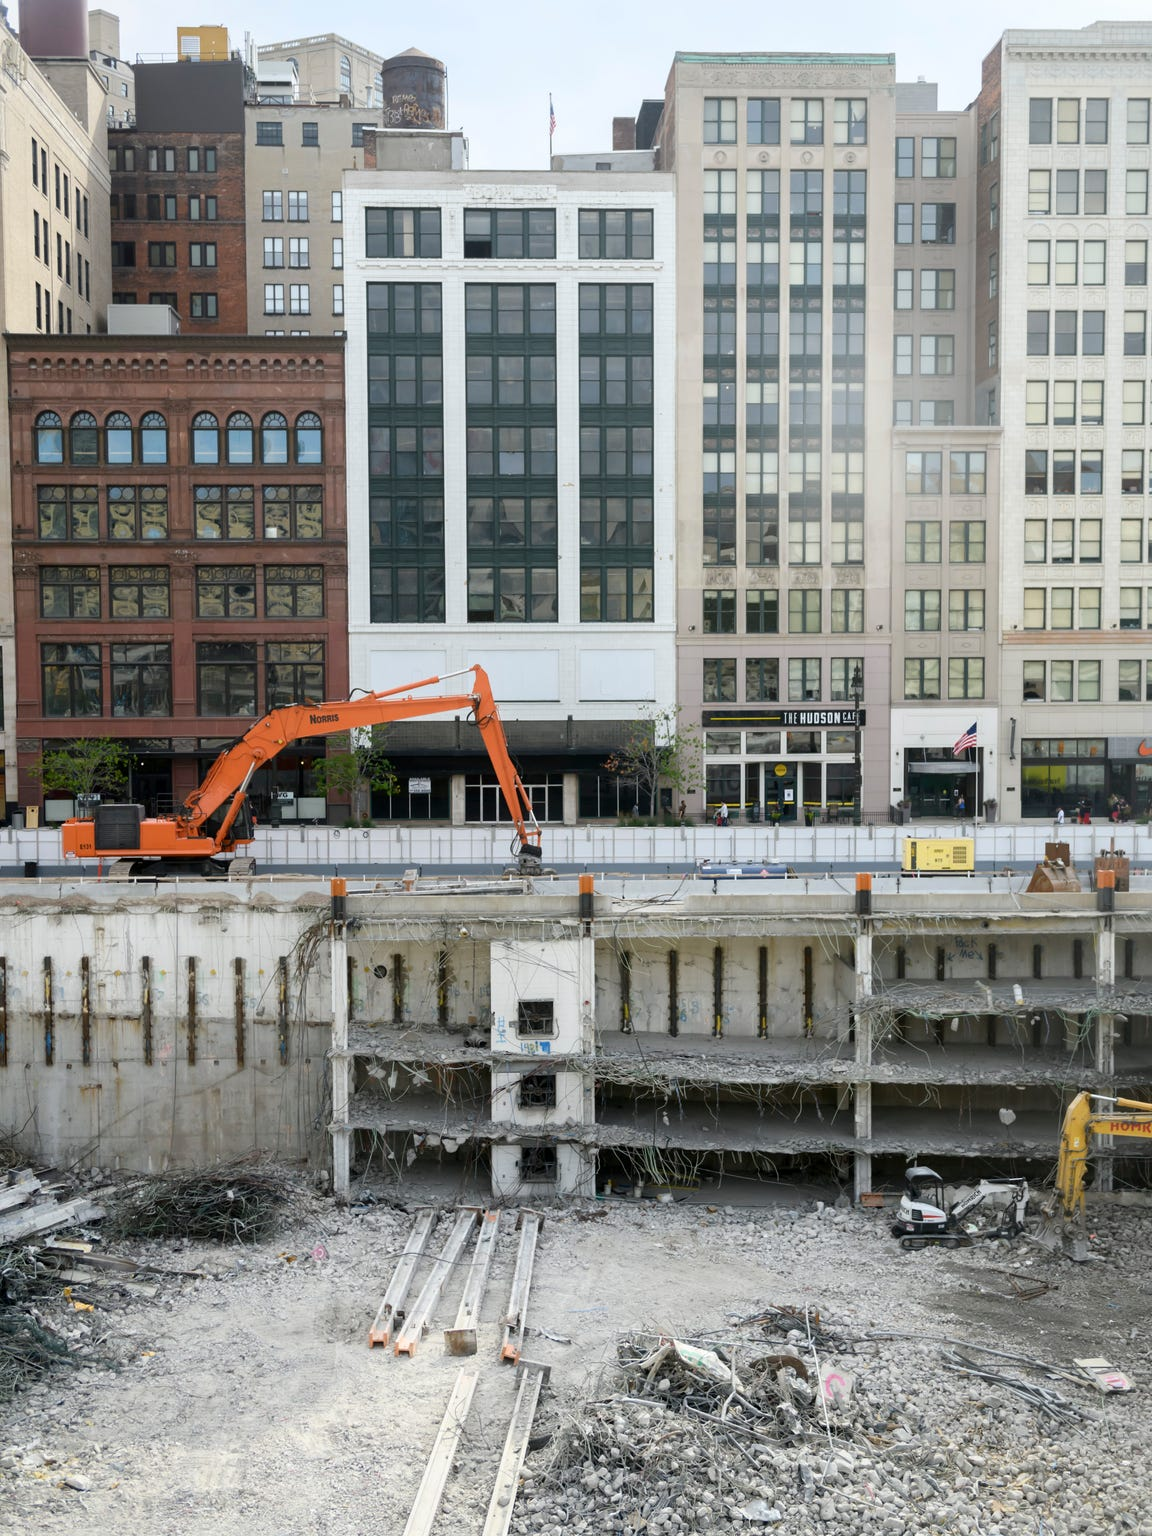 Construction is underway at the Hudson's building site